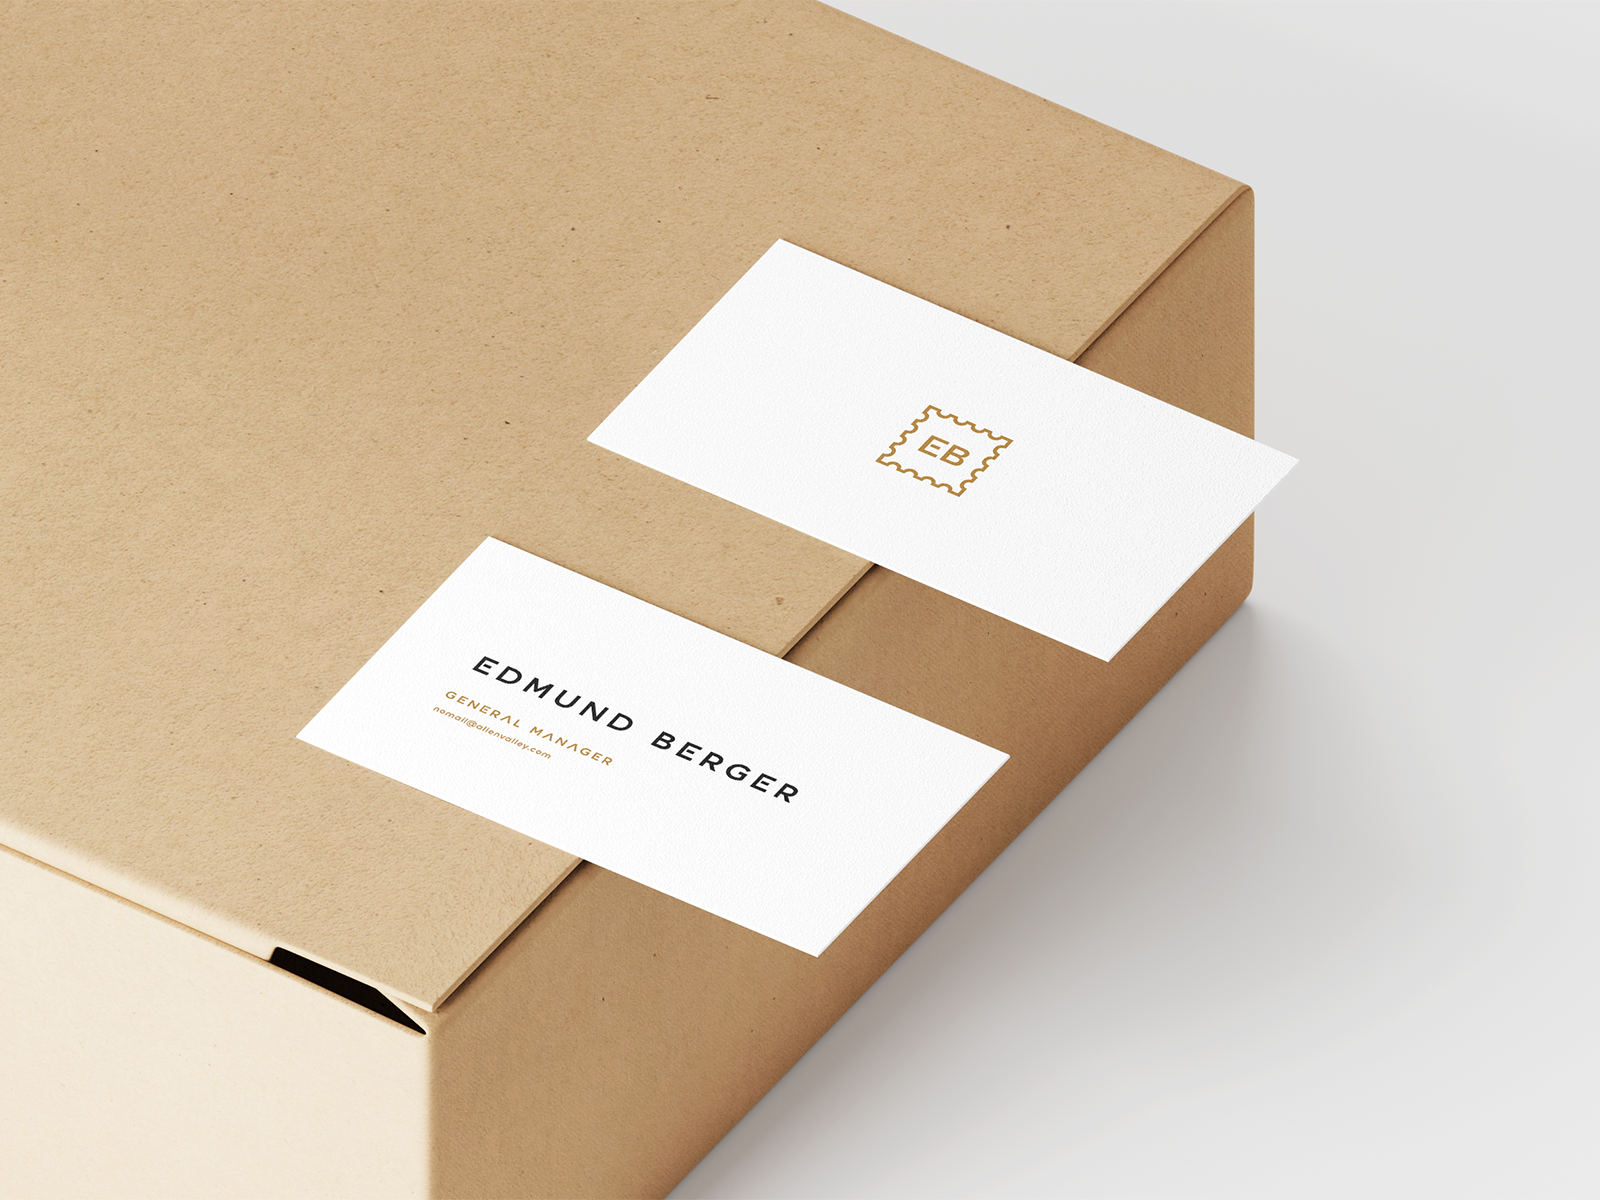 Download Freebie Business Cards On Box Mockup Box Mockup Download Business Card Free Business Cards